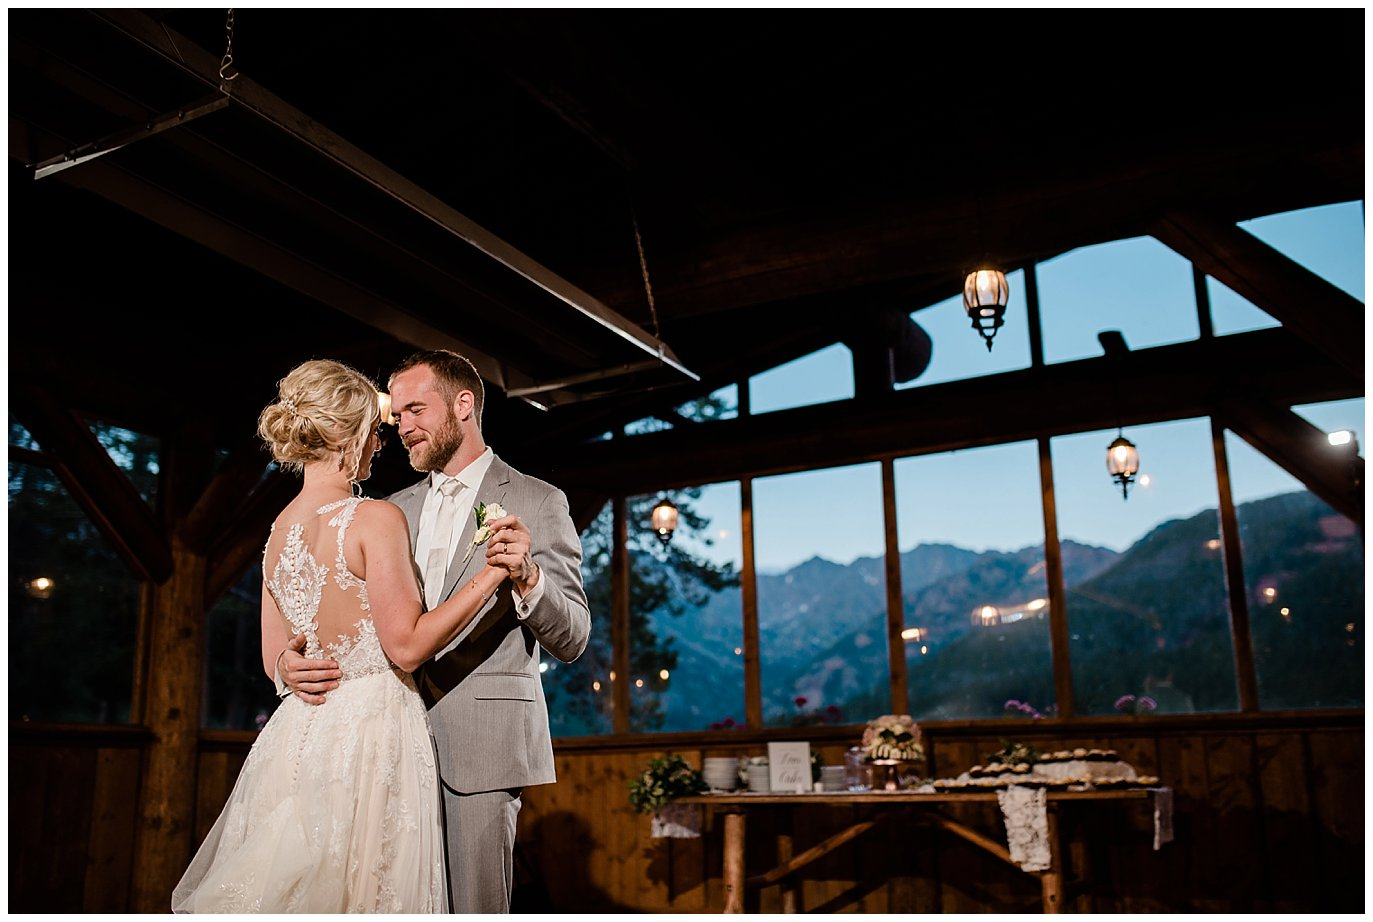 first dance with colorado mountains in background at Piney River Ranch wedding by Aspen wedding photographer Jennie Crate, Photographer